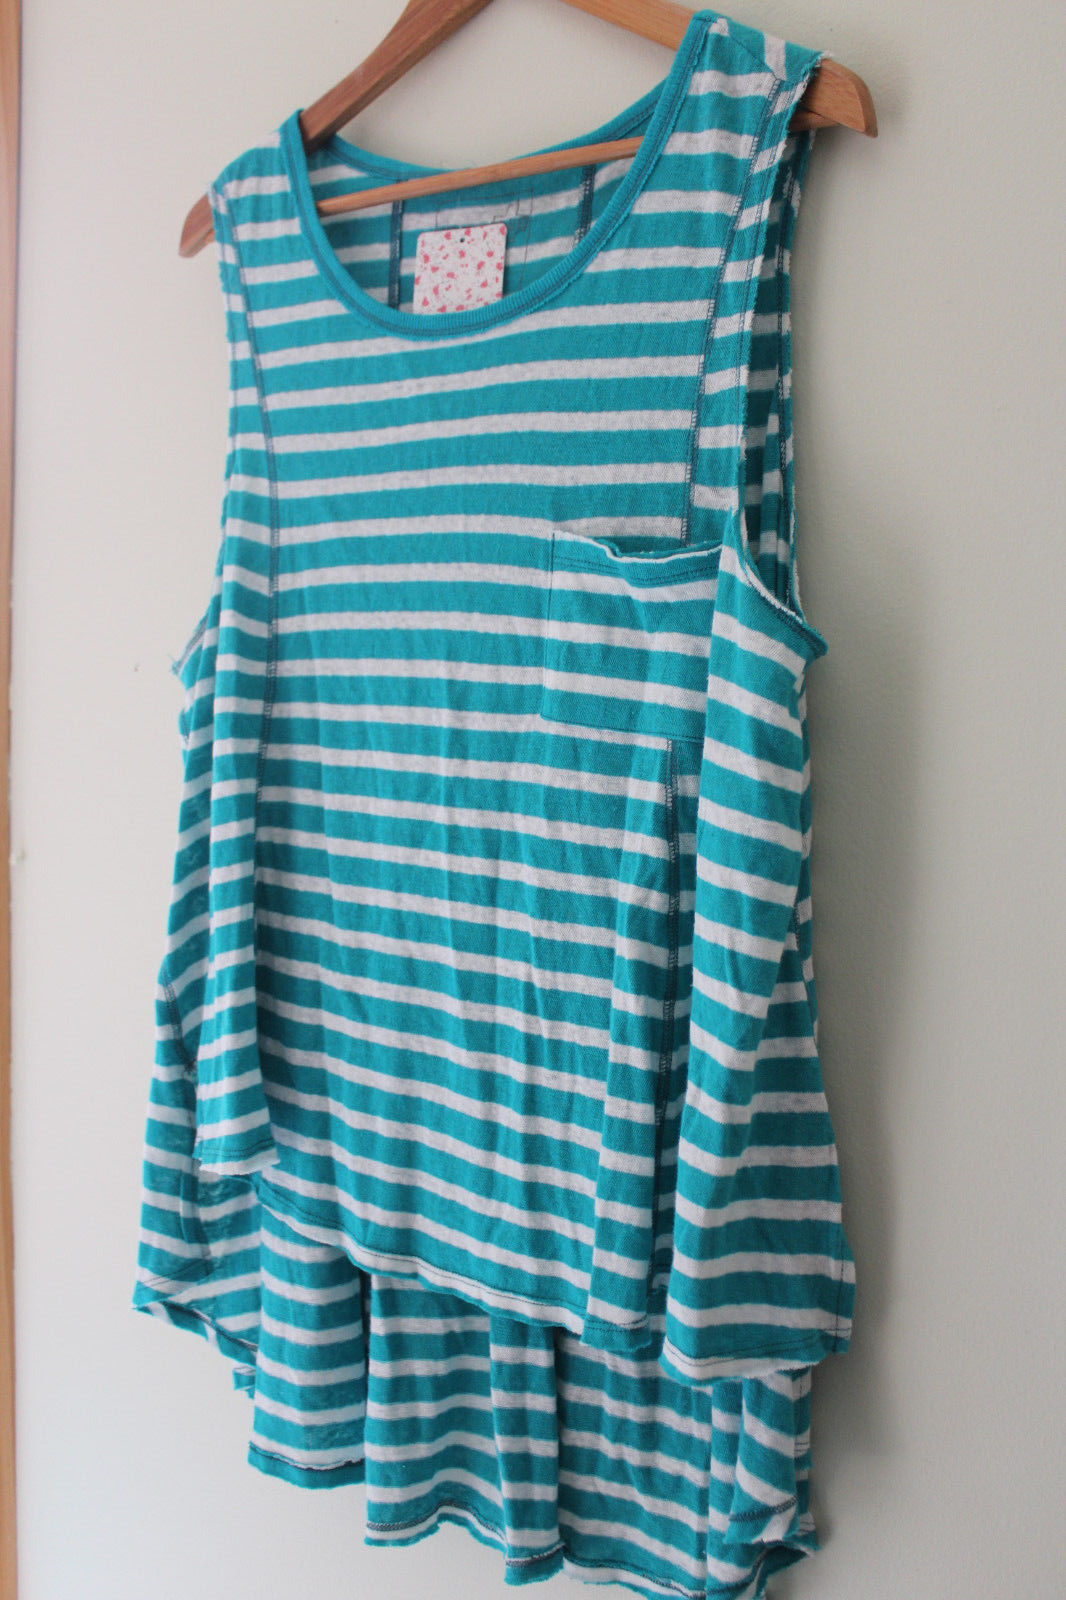 NWT Free People Designer Relaxed Linen Cotton Aqua Combo Sleeveless Top XS S $68